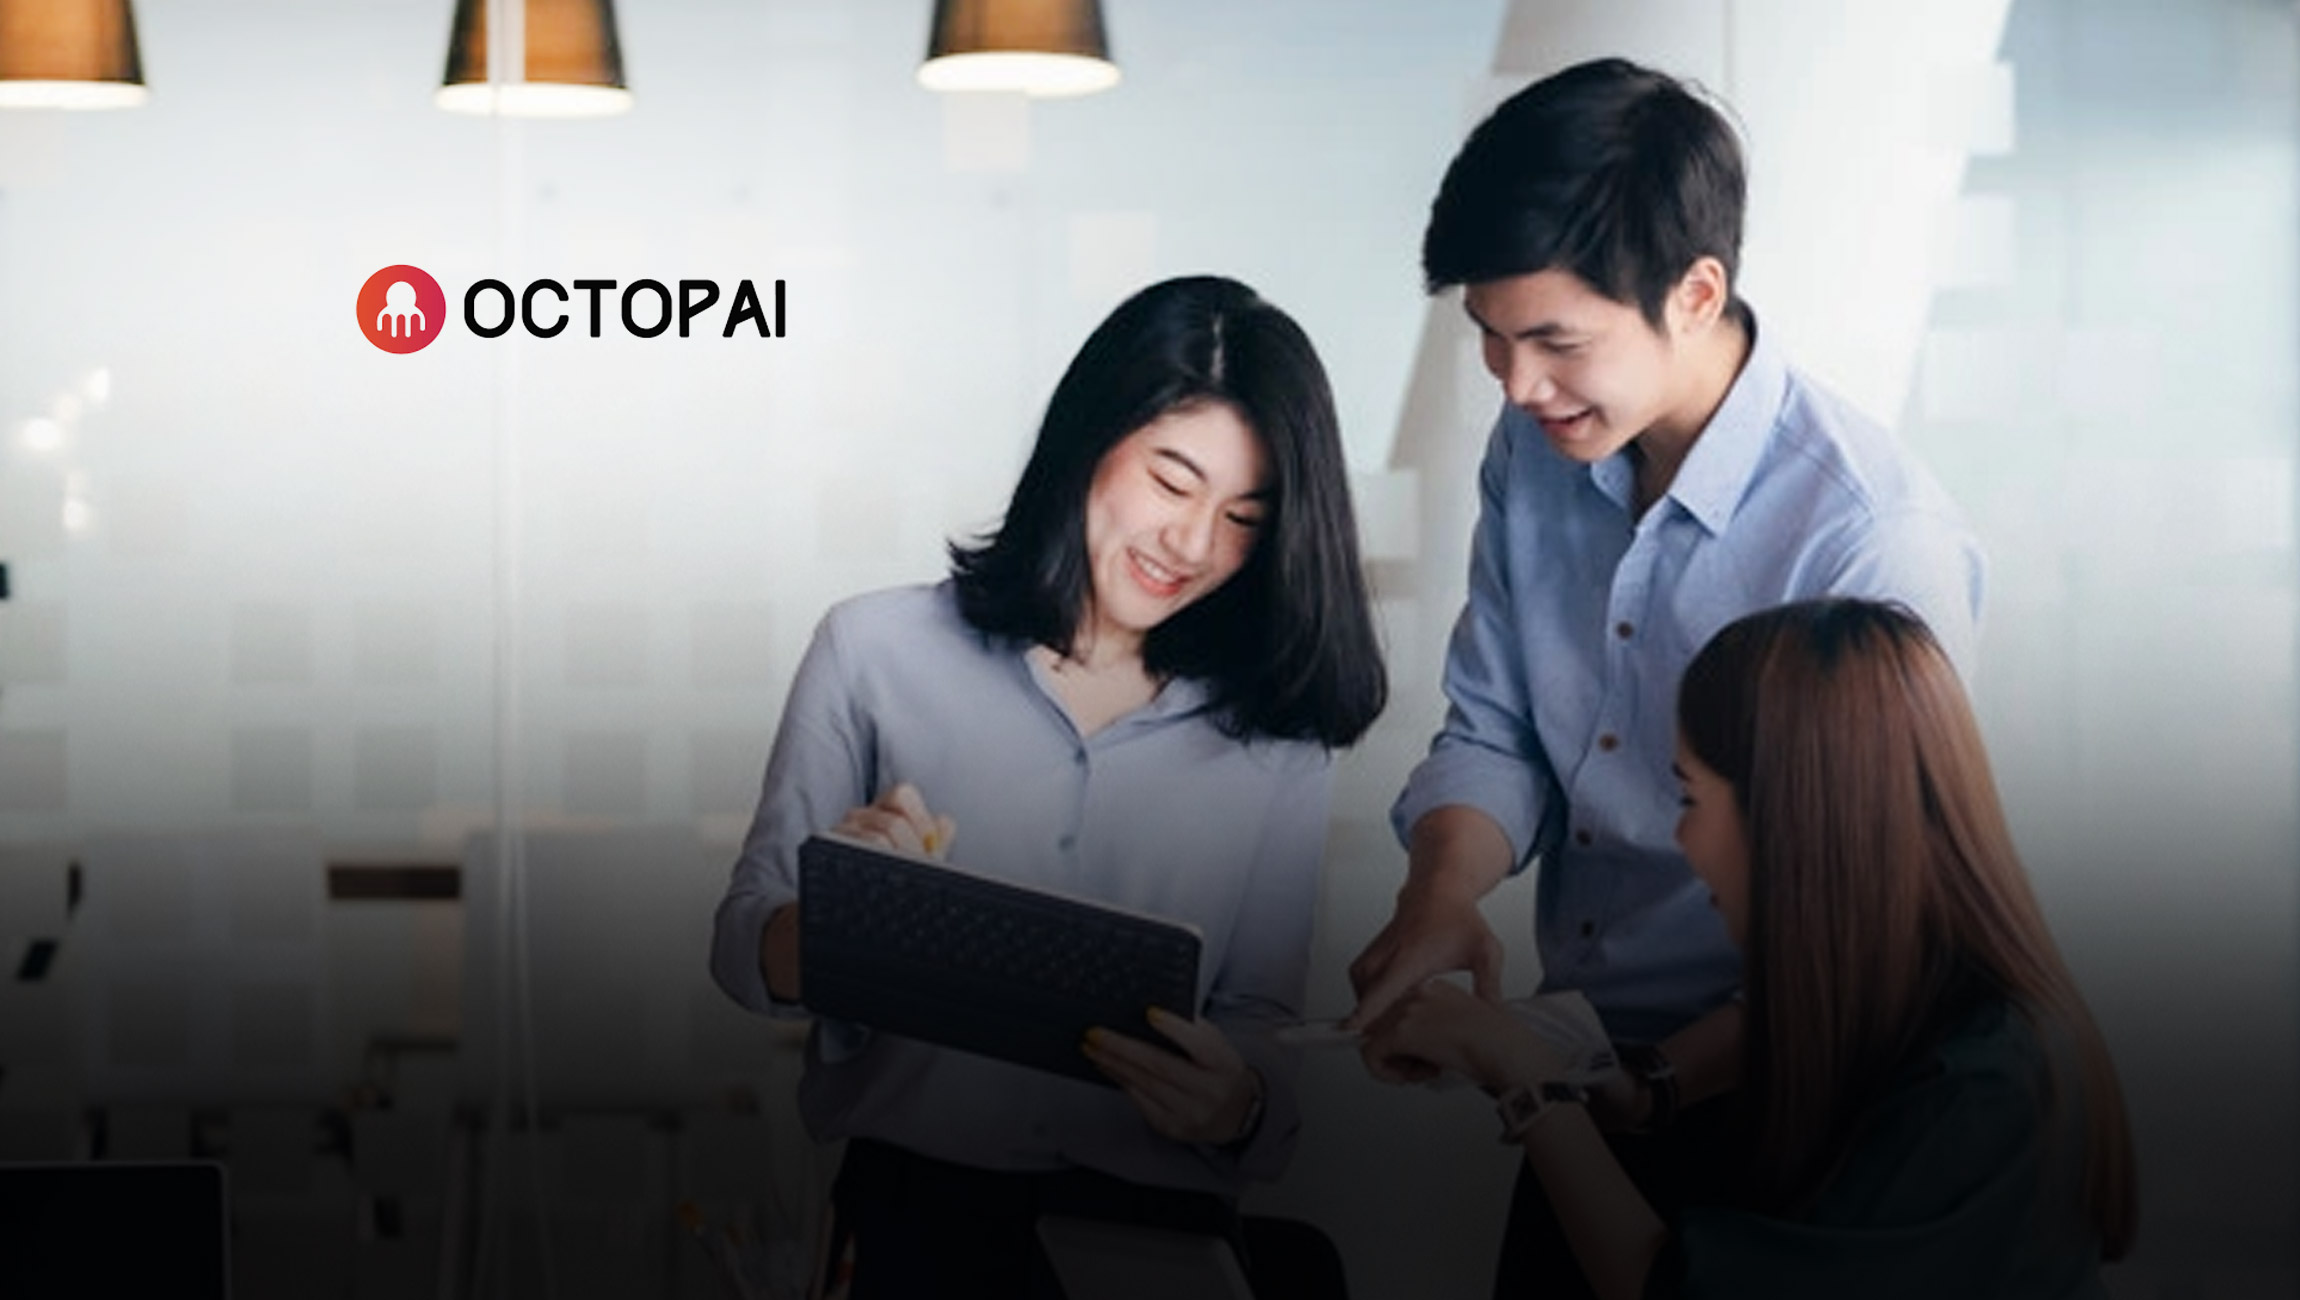 Octopai-Announces-Support-of-Microsoft-Azure-Data-Factory_-Empowering-Organizations-and-Data-Users-with-Advanced-Intelligence-in-BI-Environments